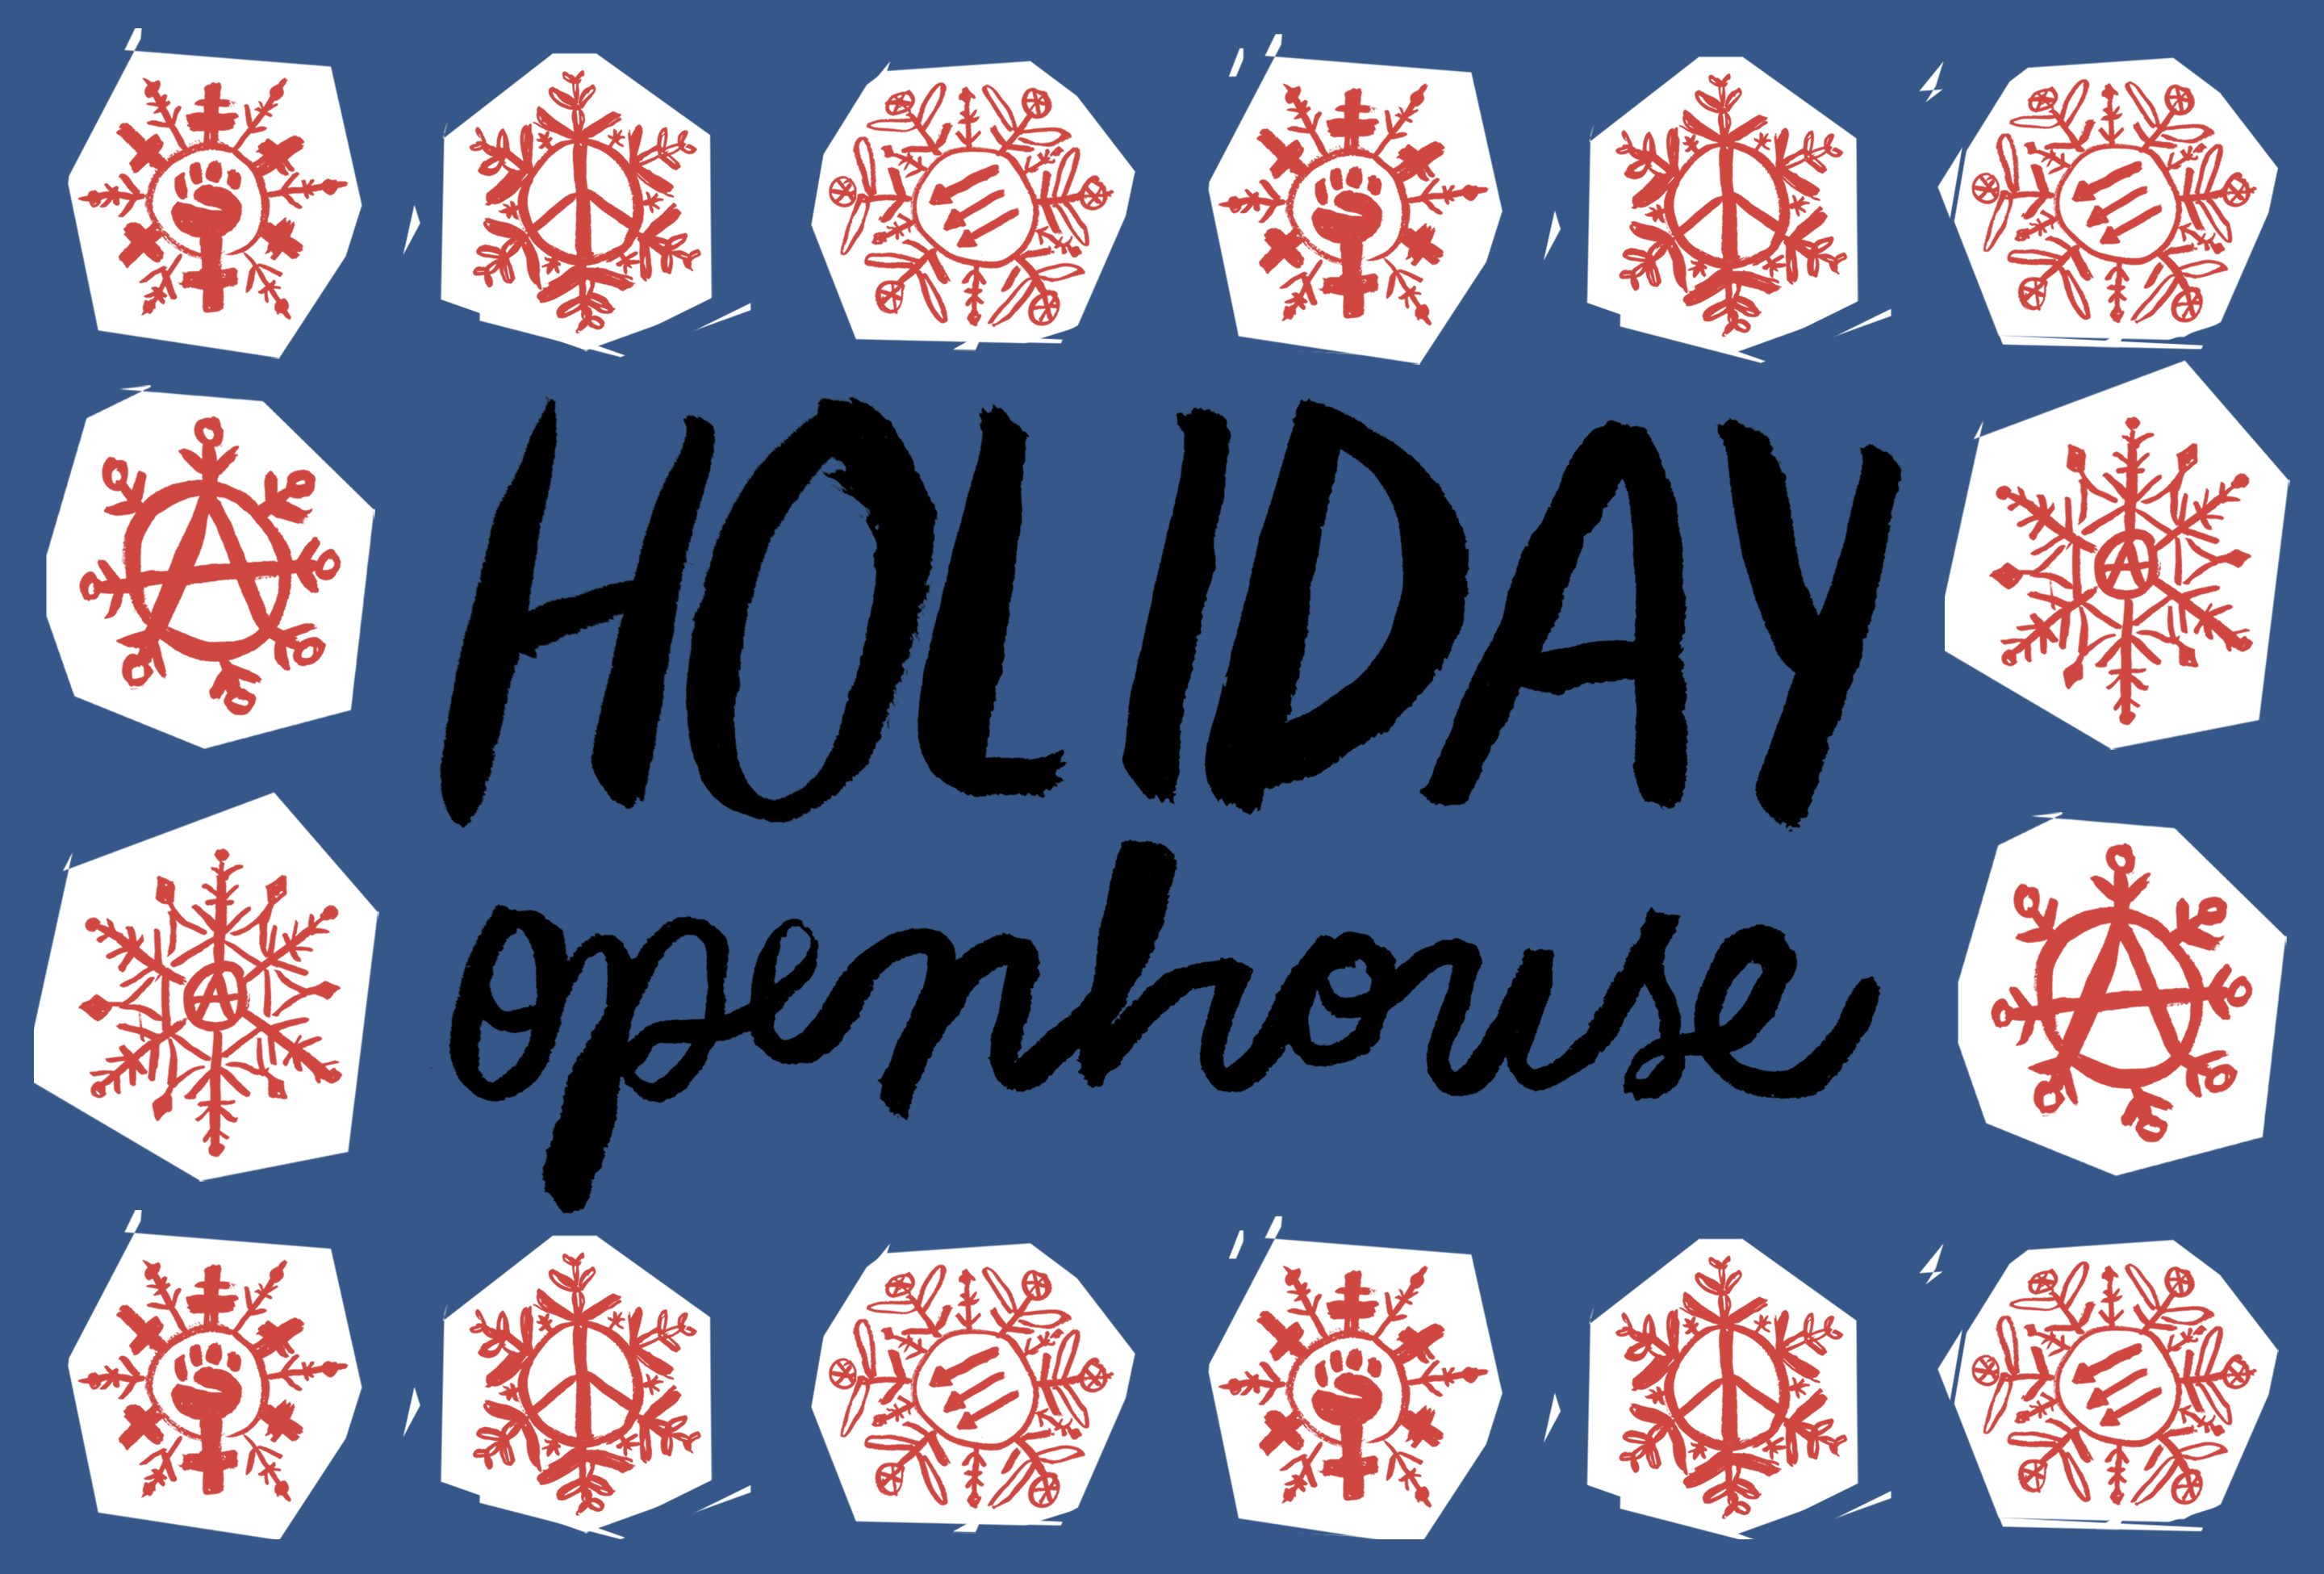 Holiday Openhouse 2018